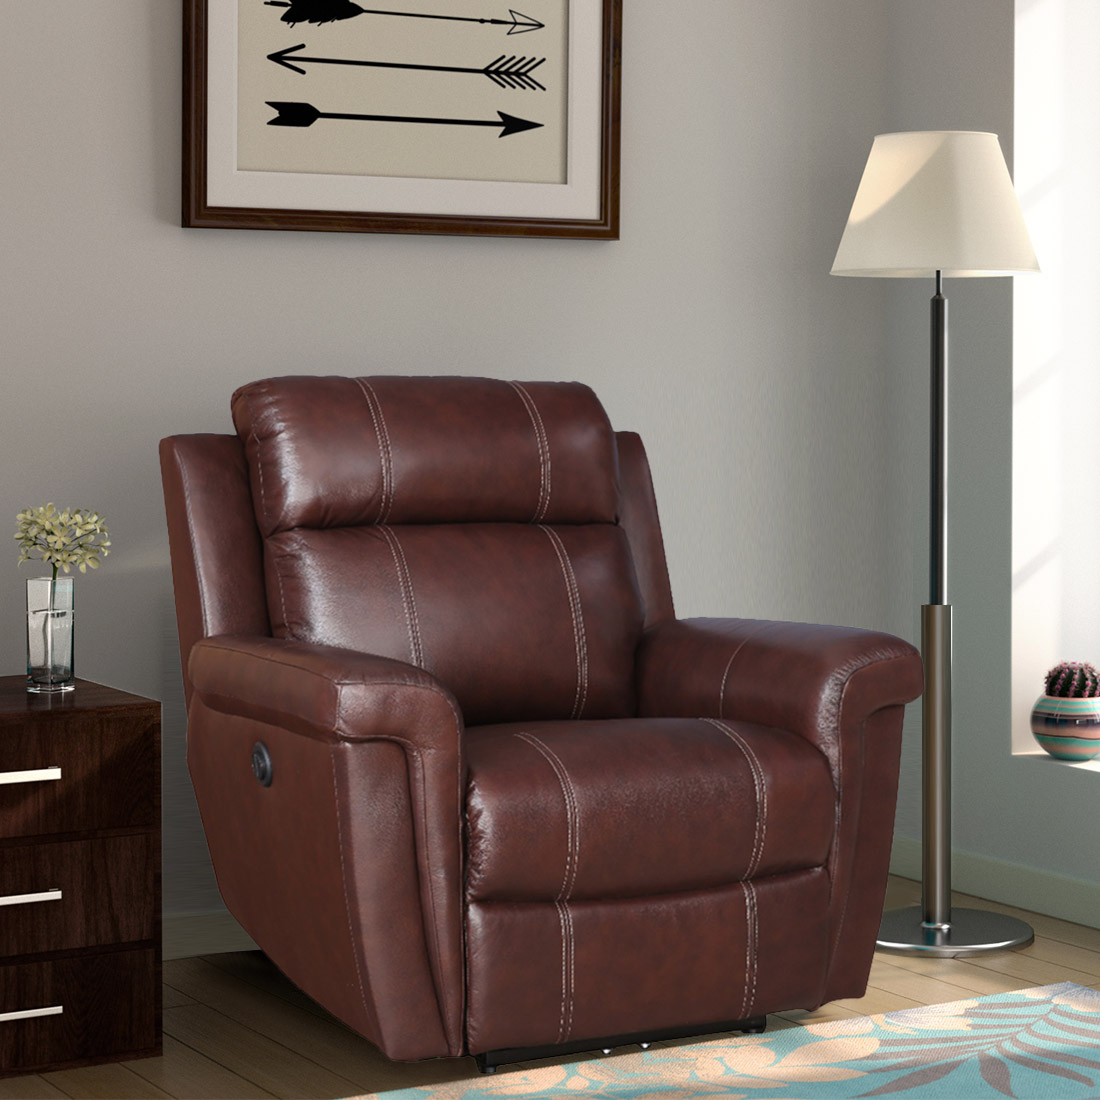 Gatwick New Single Seater sofa in Dark Brown Colour by HomeTown